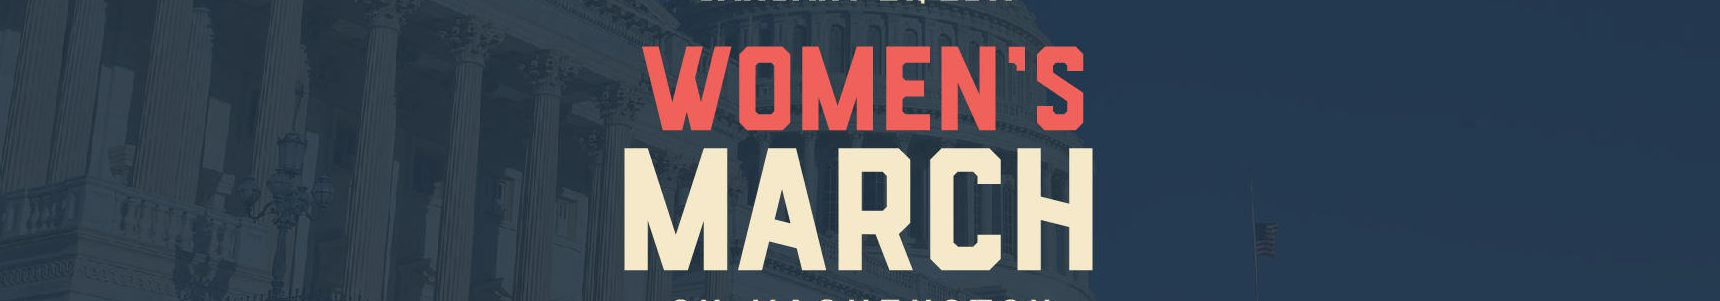 The role of new media activism for the #womensmarch movement: an introduction